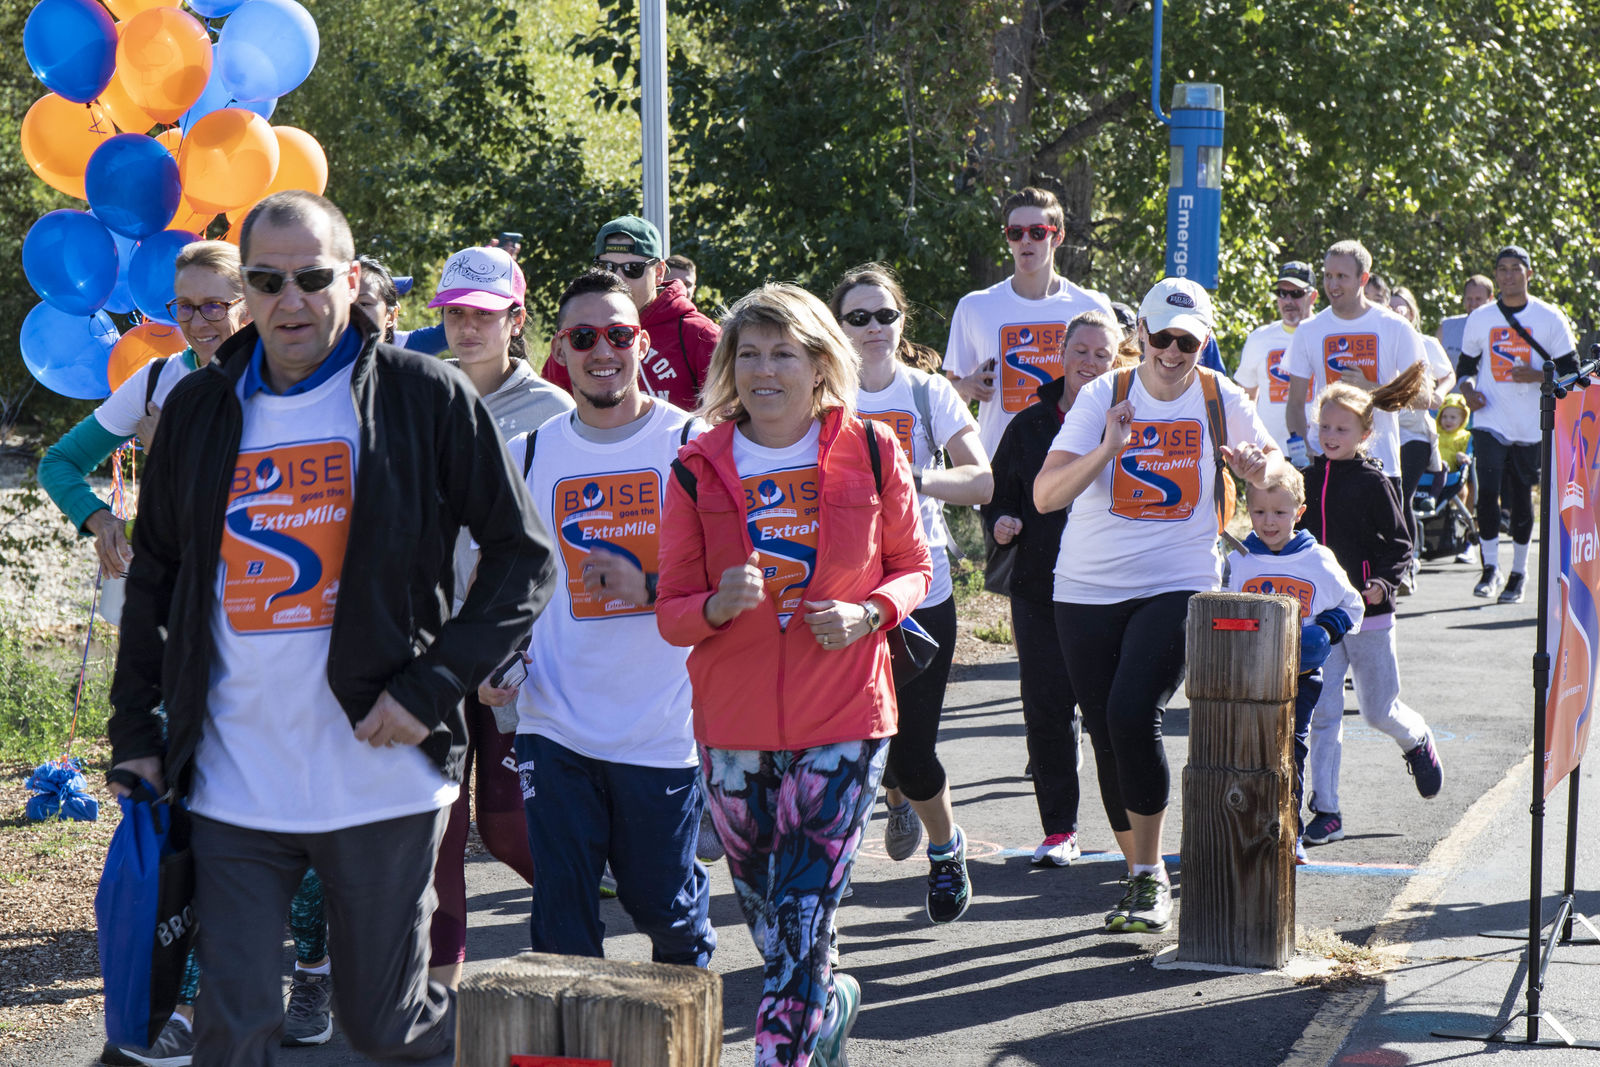 The celebration of the 50th anniversary of the Greenbelt continues with the first Extra Mile run and walk. Boise State President Marlene Tromp and Boise Mayor Bieter were in attendance as well. (Photos by Axel Quartarone){ }